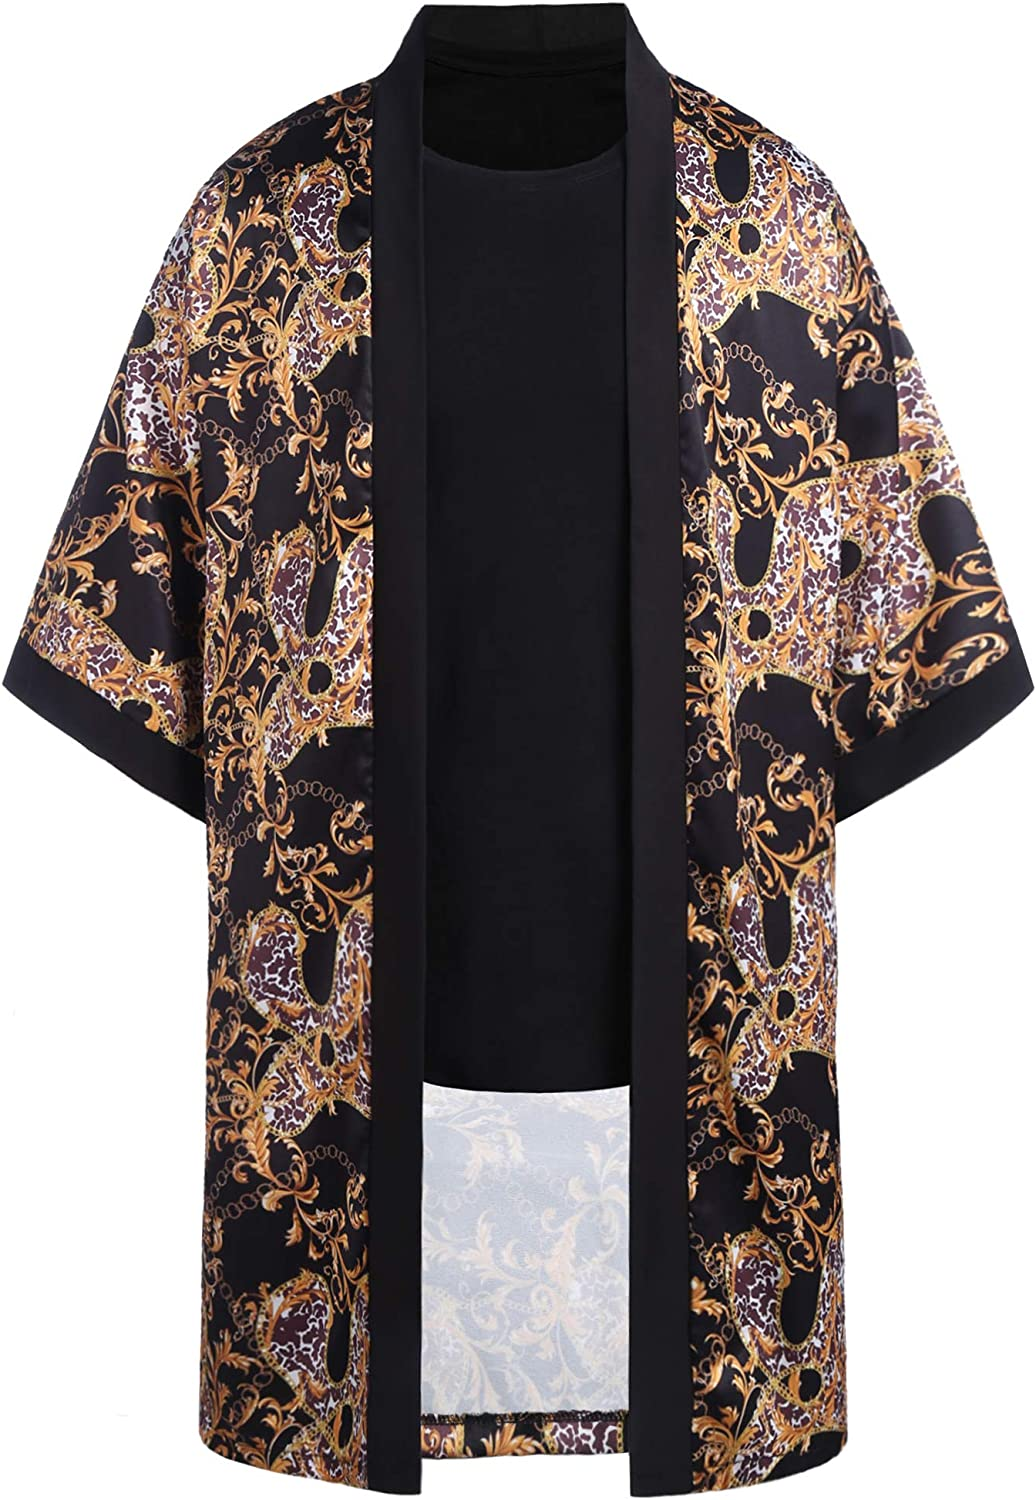 Max 65% OFF Men's Our shop most popular Luxury Design Print Cardigan Casual S Short Shawl